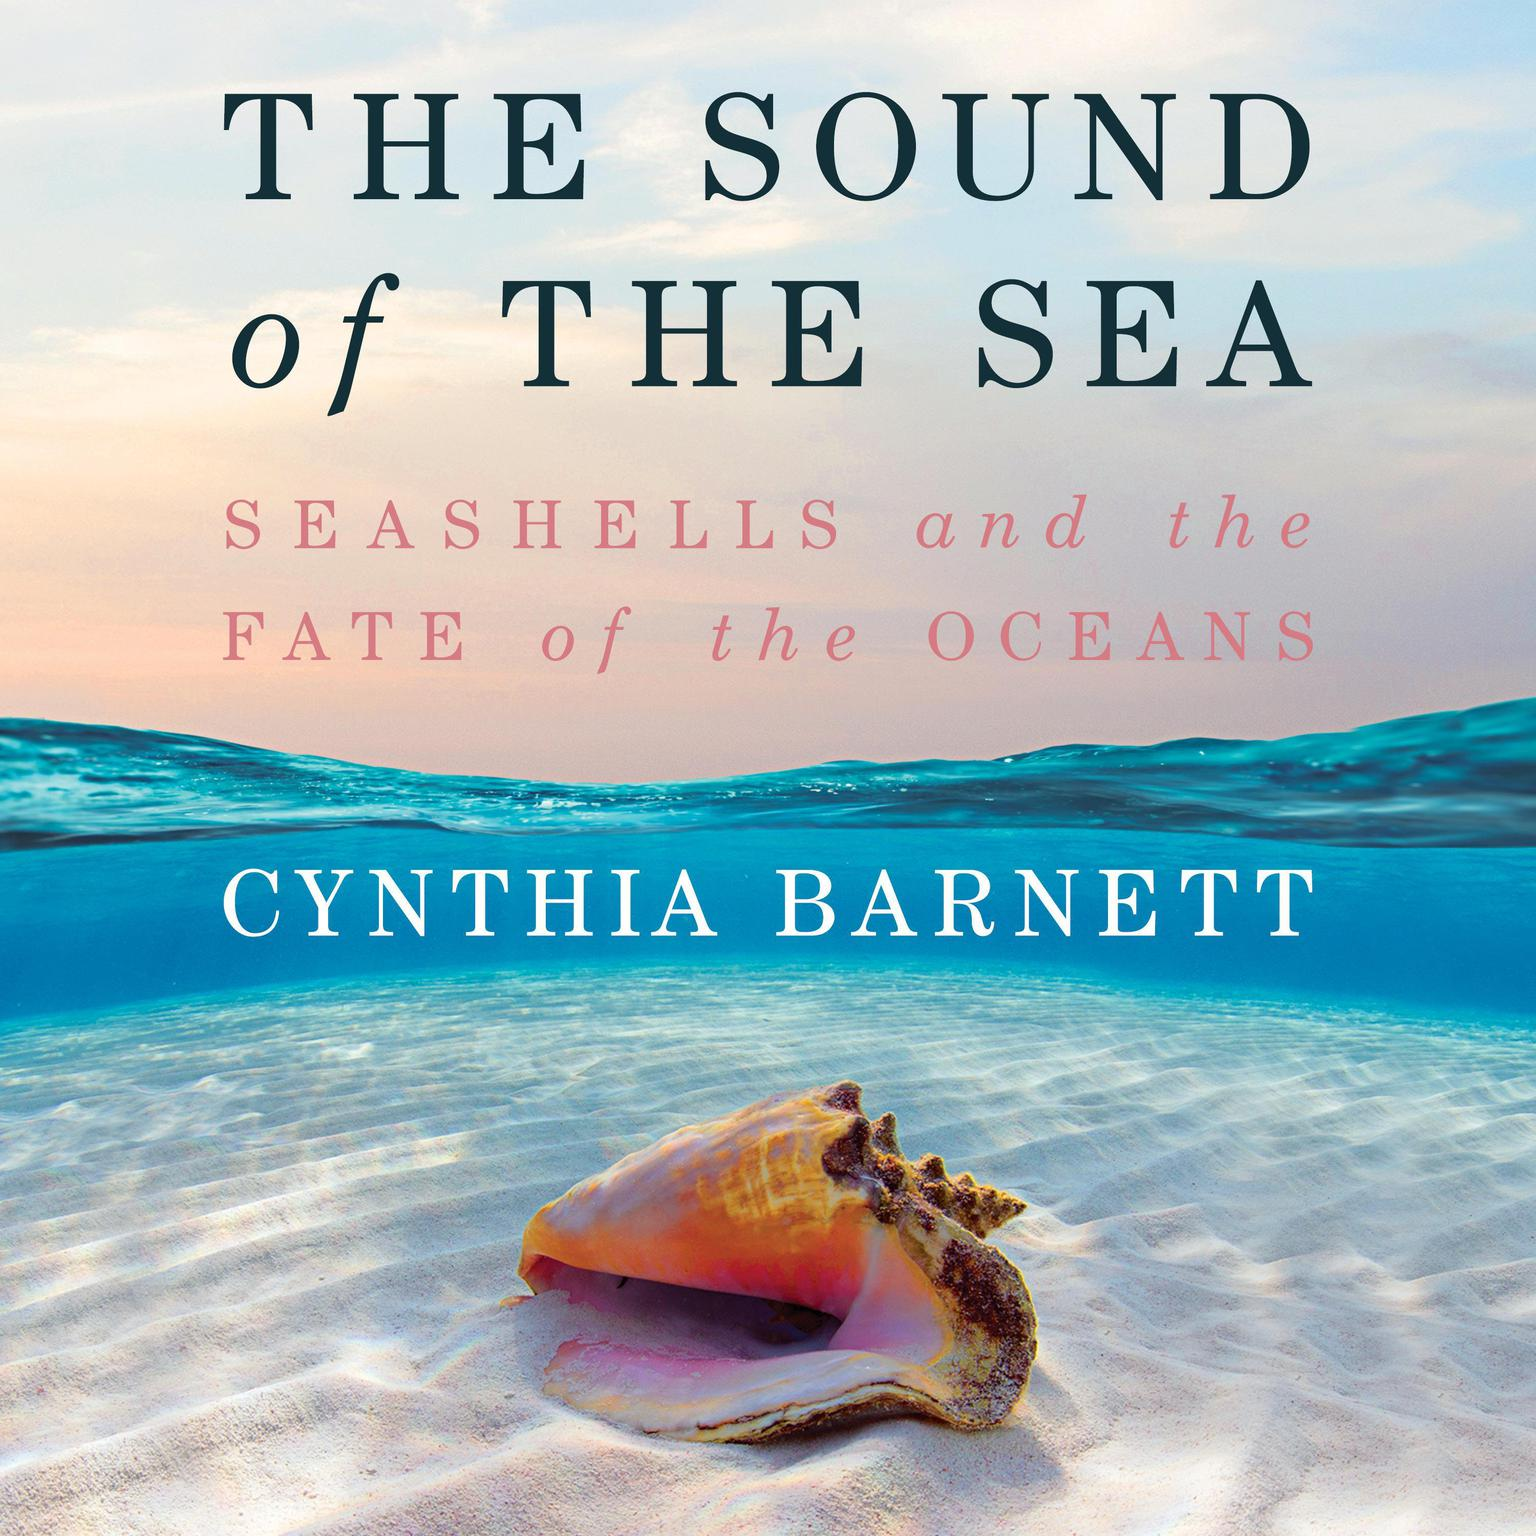 The Sound of the Sea: Seashells and the Fate of the Oceans Audiobook, by Cynthia Barnett